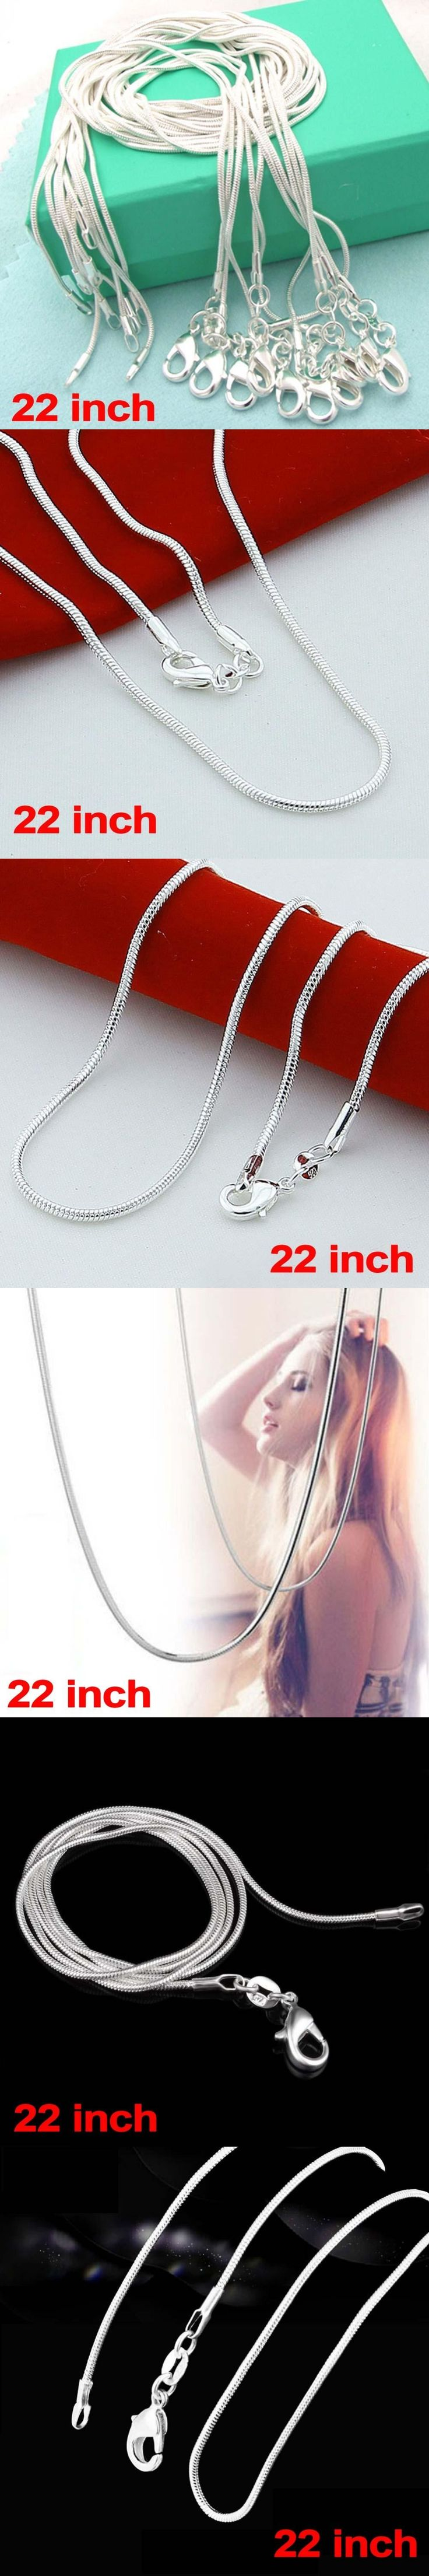 Fashion 925 Sterling Solid Silver lots 1mm Snake Chains Necklaces 22 inch NEW silver jewelry cheap necklaces